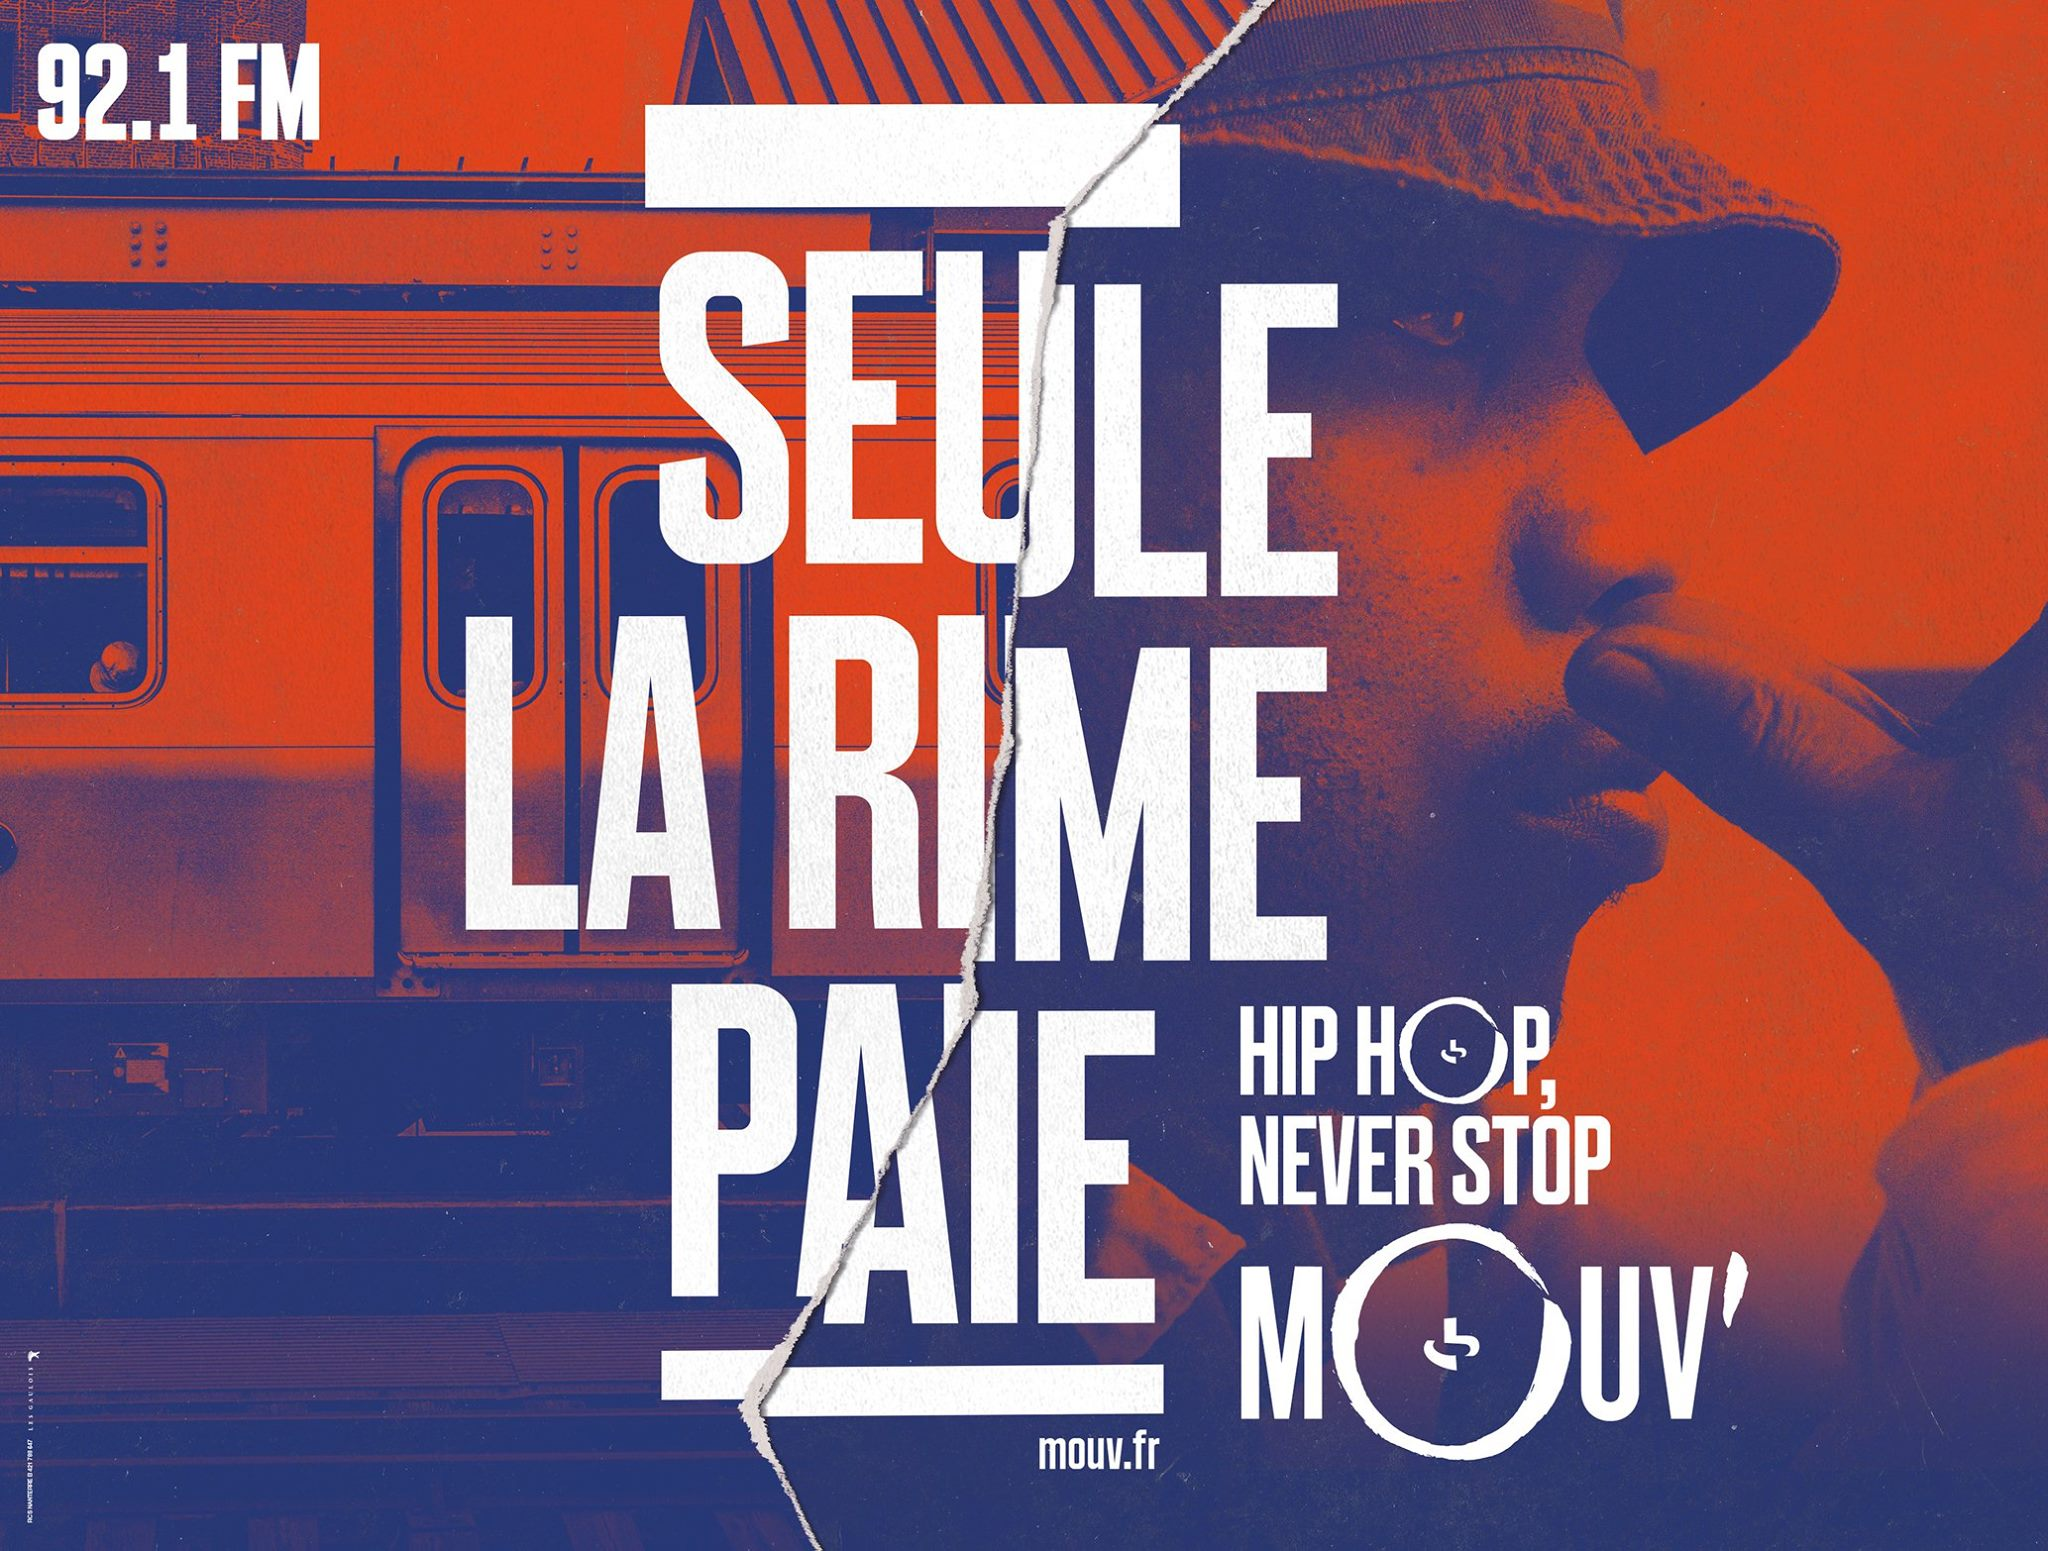 mouv-radio-hip-hop-rap-publicite-marketing-affiche-rimes-paroles-novembre-2015-agence-les-gaulois-havas-1